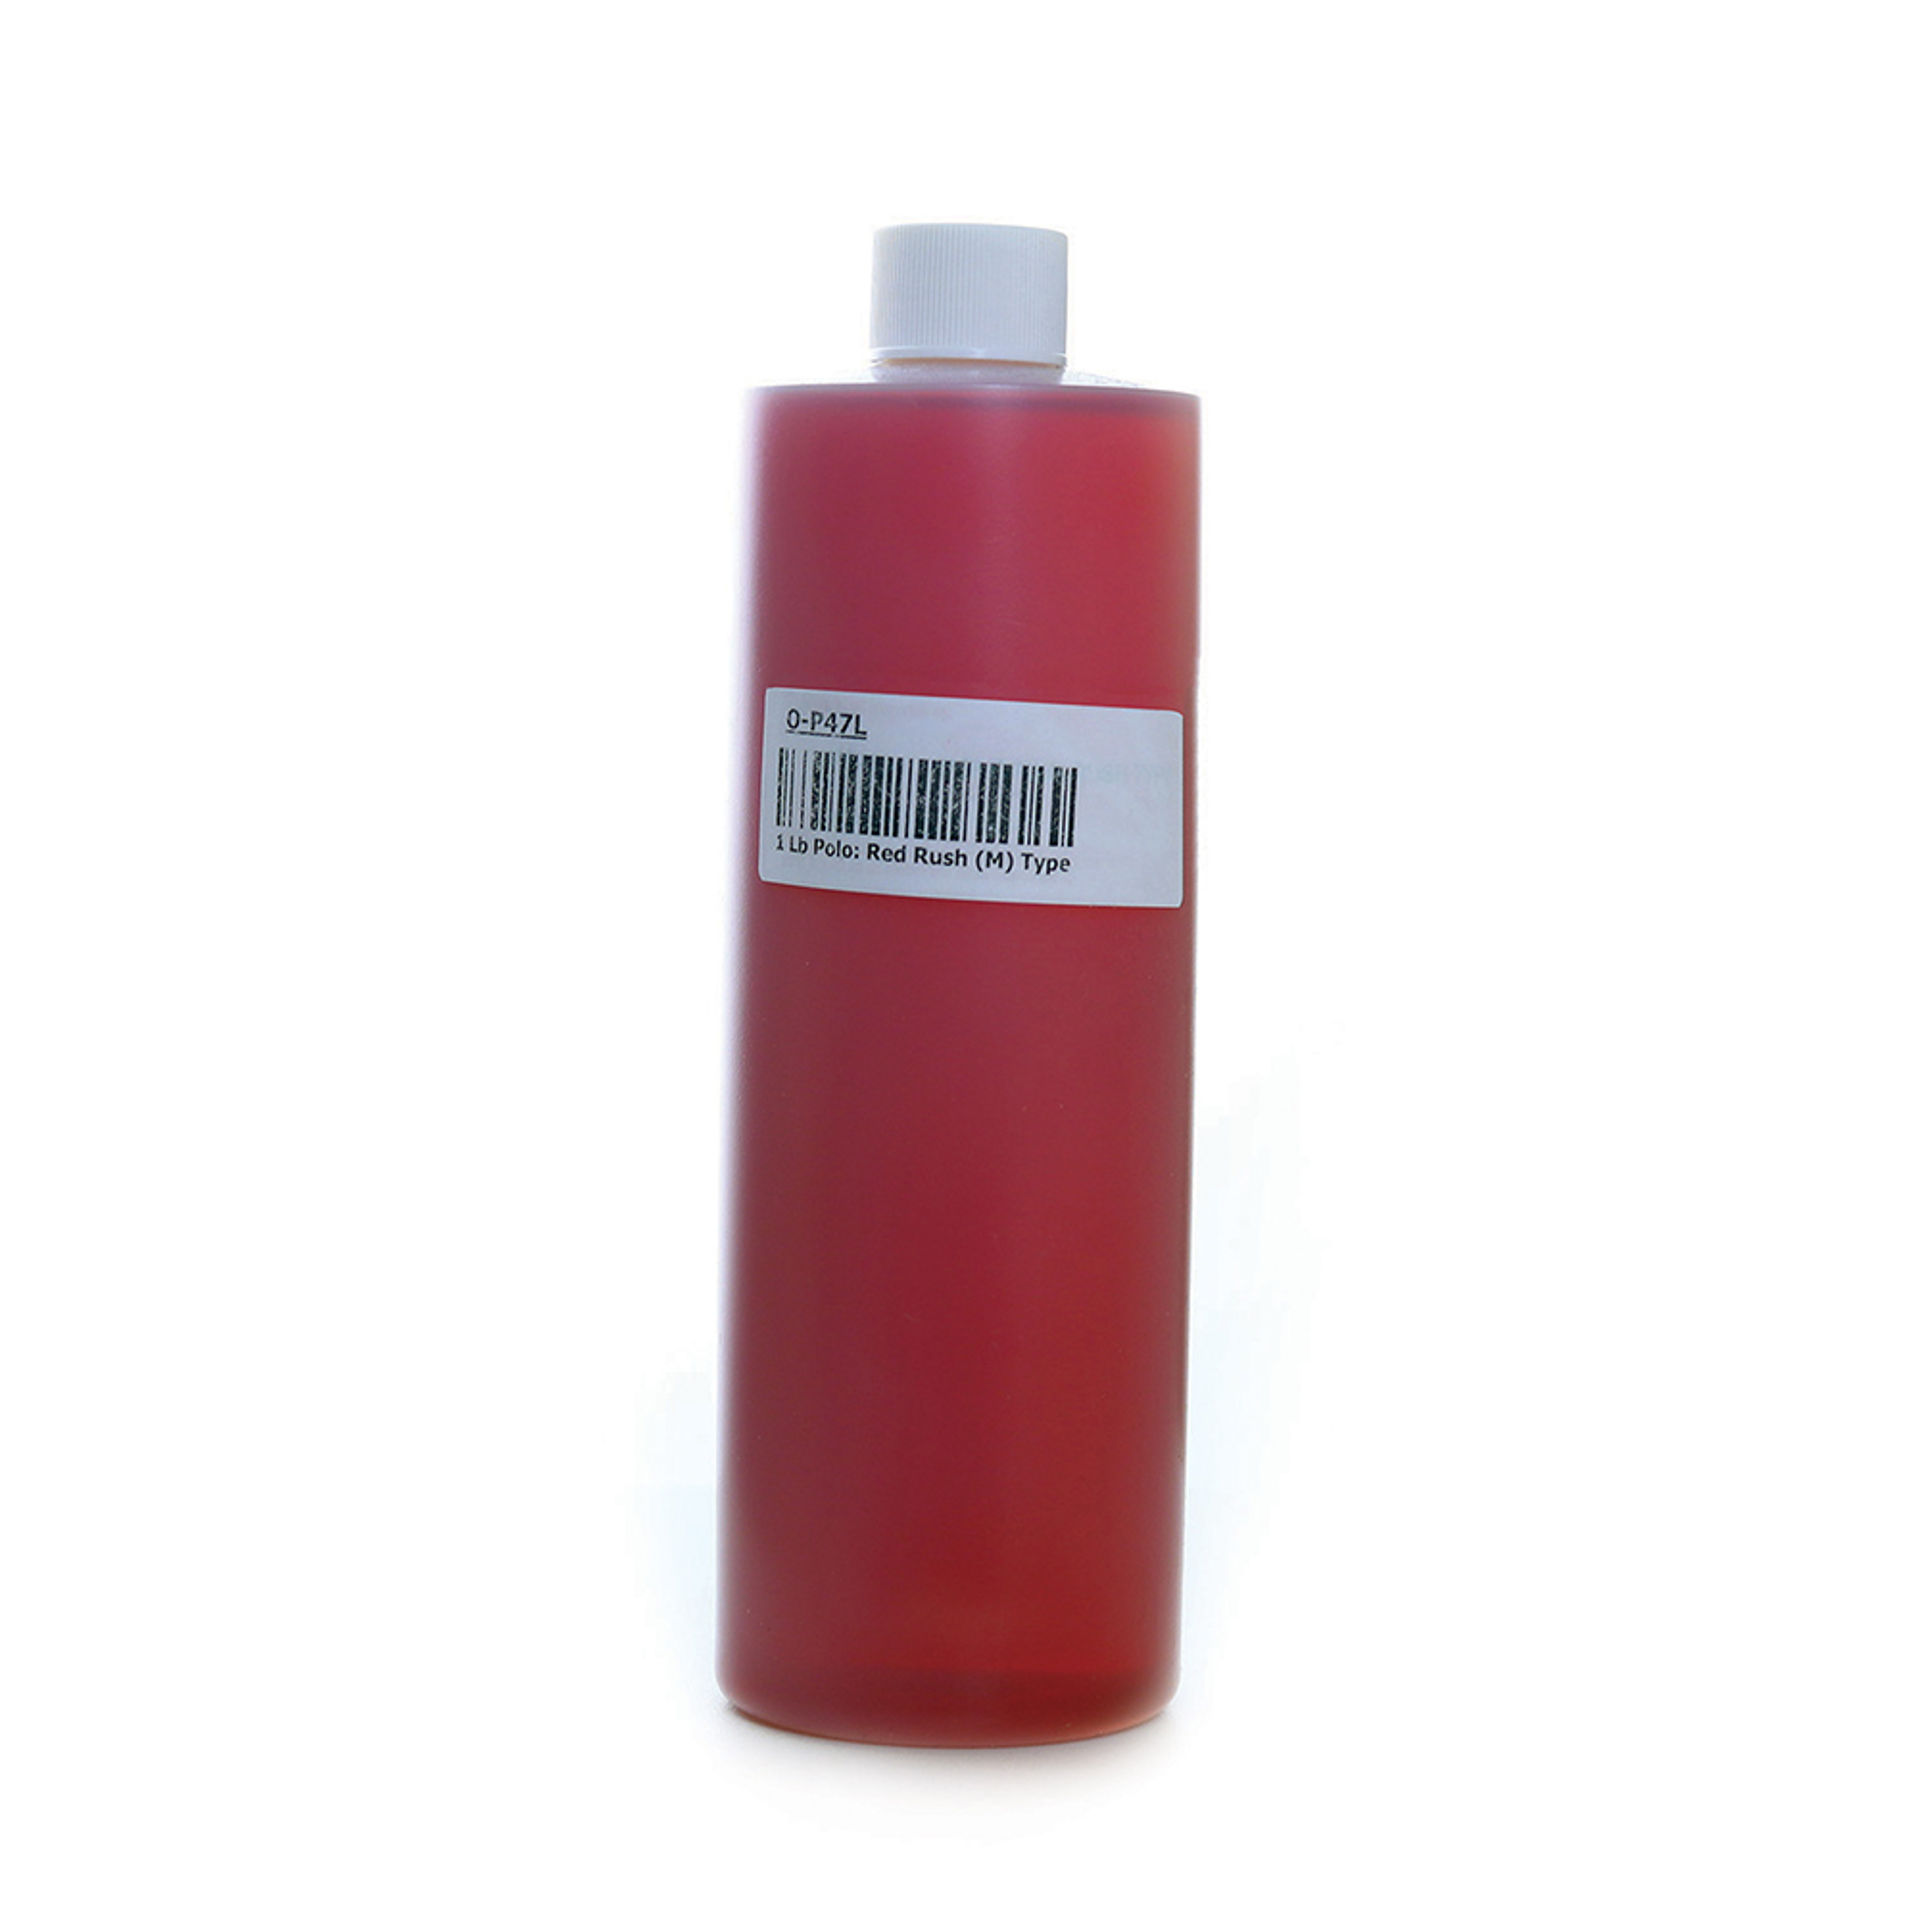 Picture of 1 Lb Polo: Red Rush (M) Type